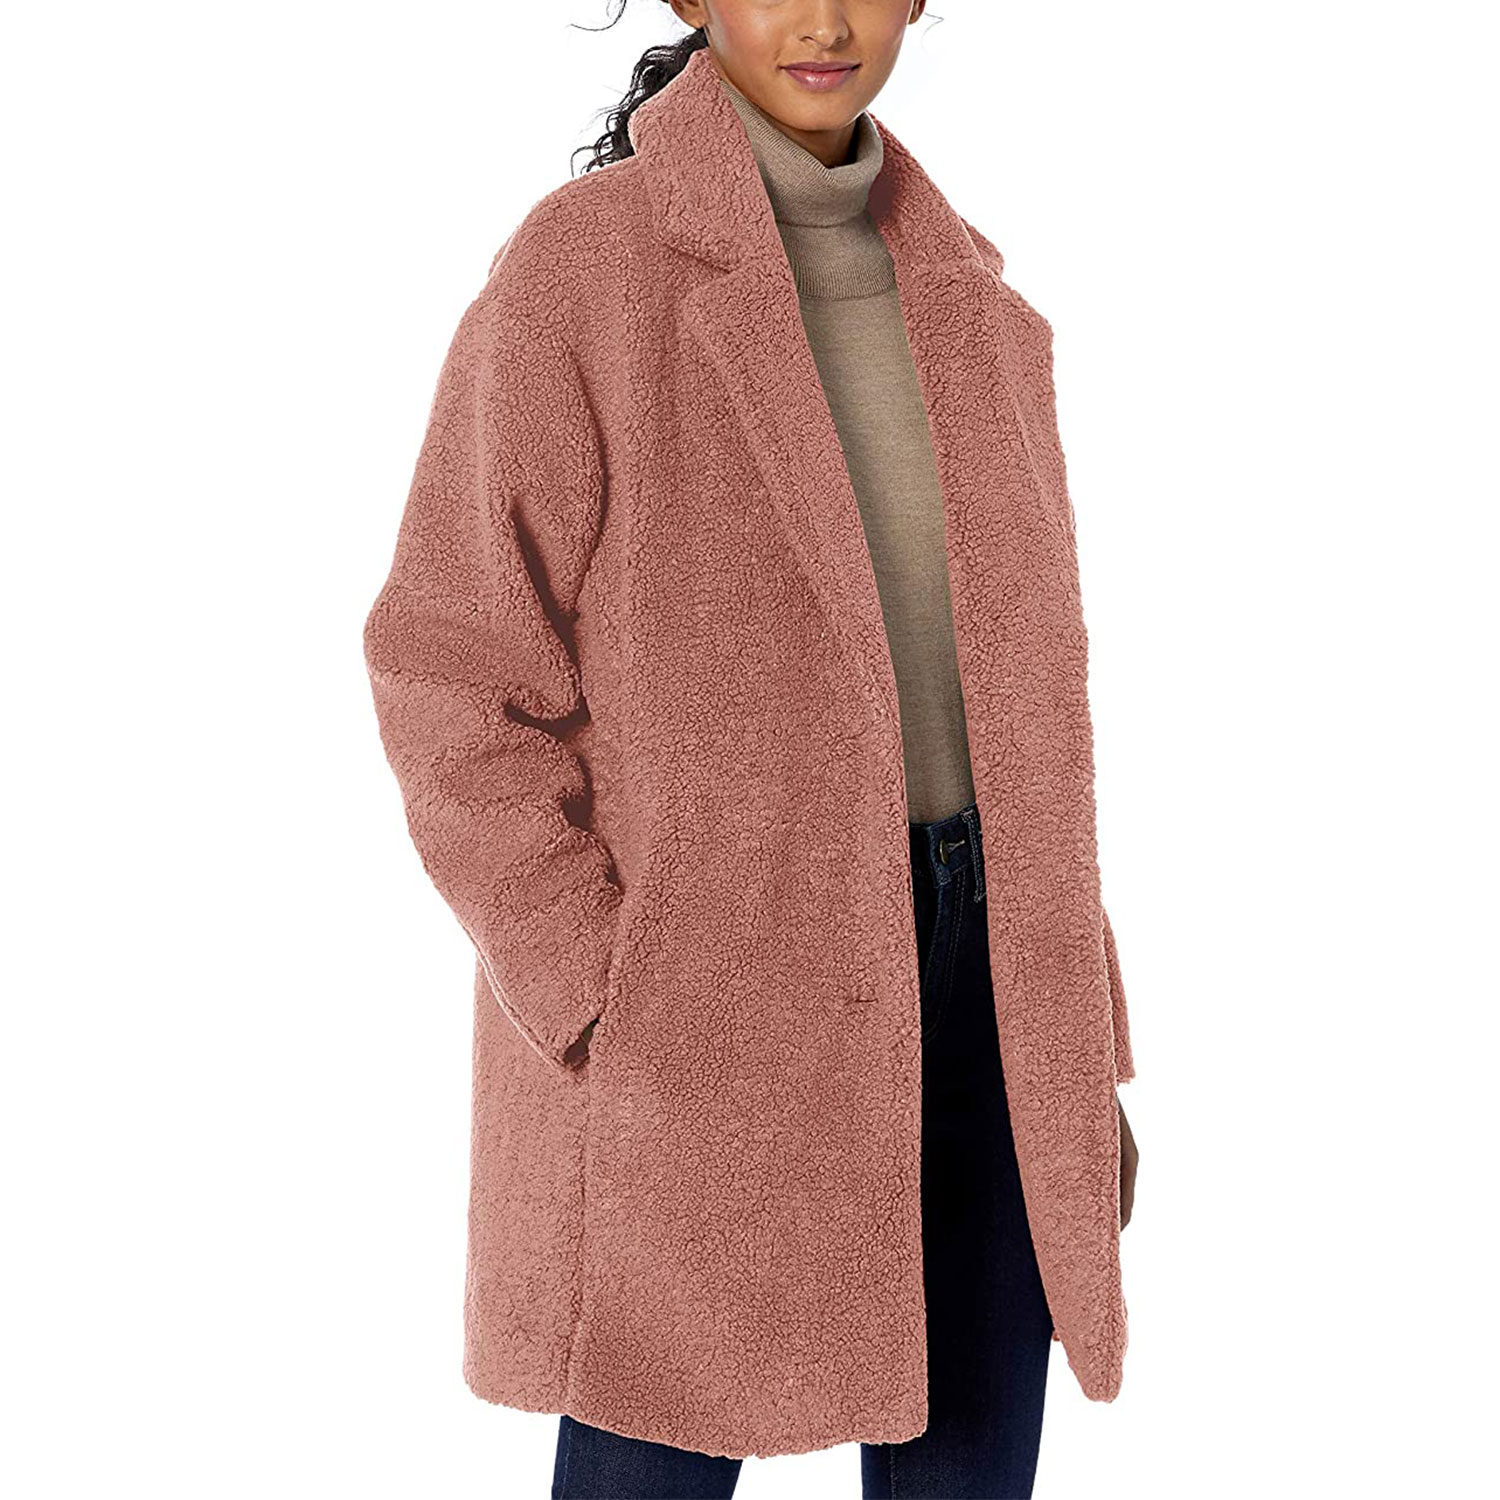 amazon daily ritual women's teddy bear fleece lapel coat